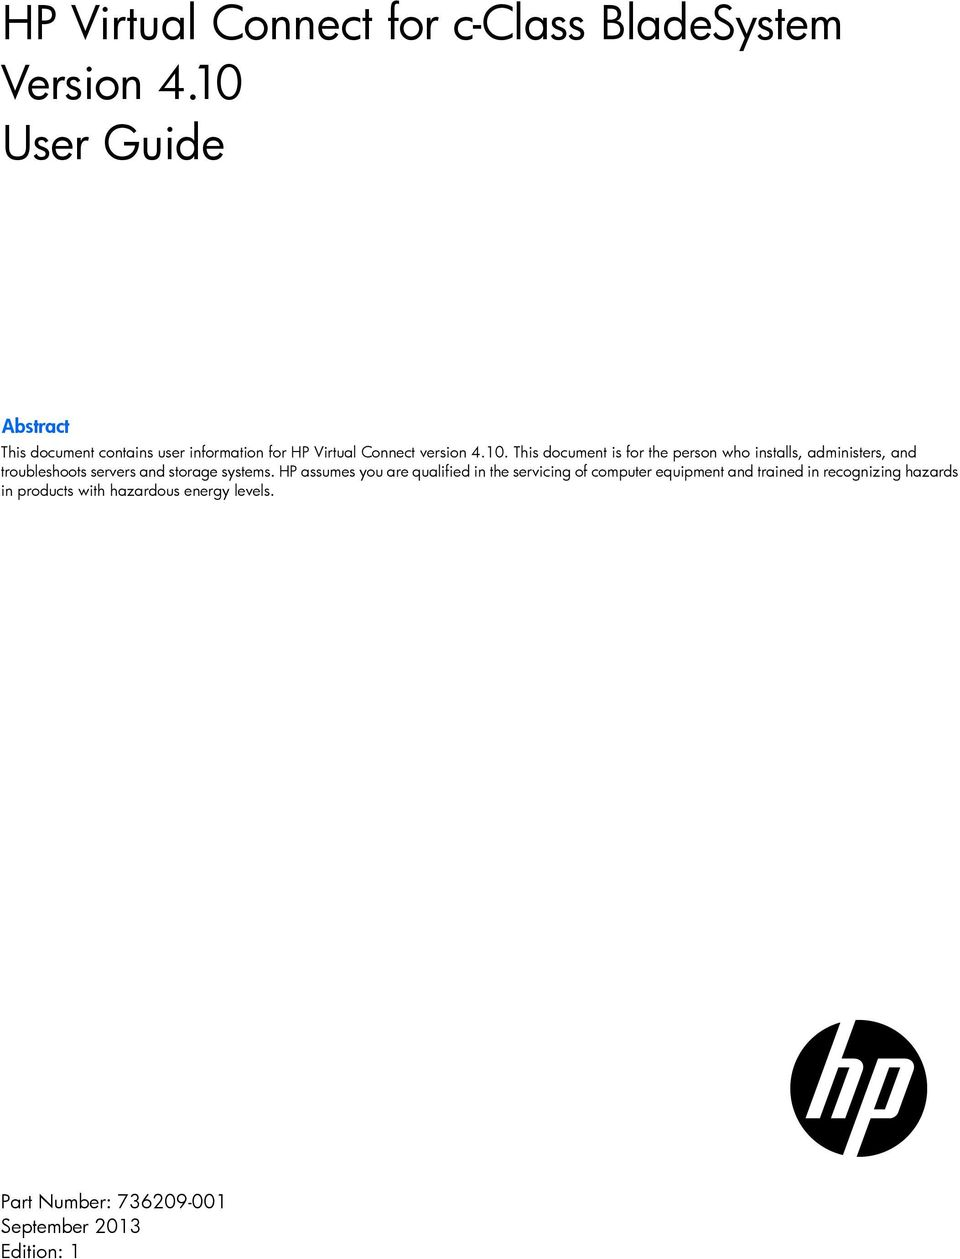 hp virtual connect for c class bladesystem version 4 10 user guide pdf rh docplayer net